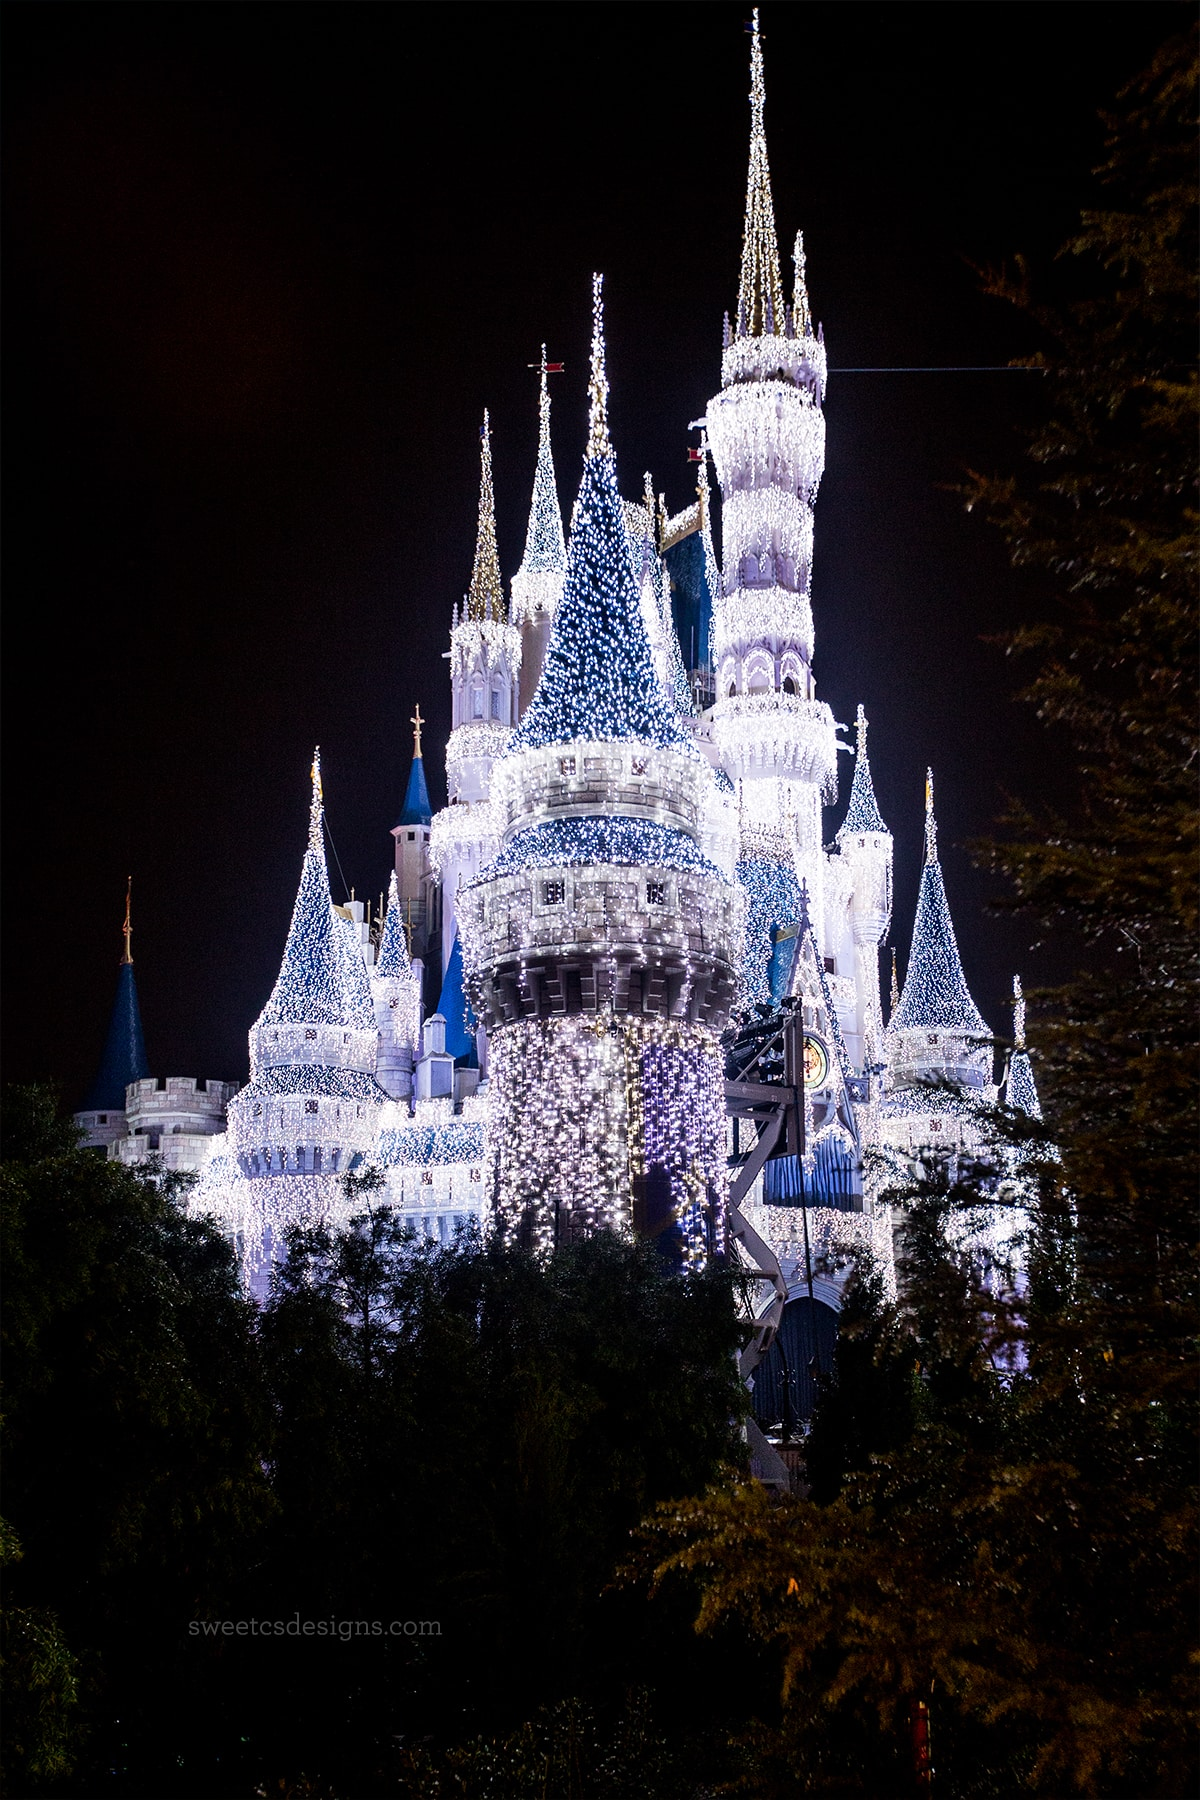 Disney World at Christmas- so pretty at night!